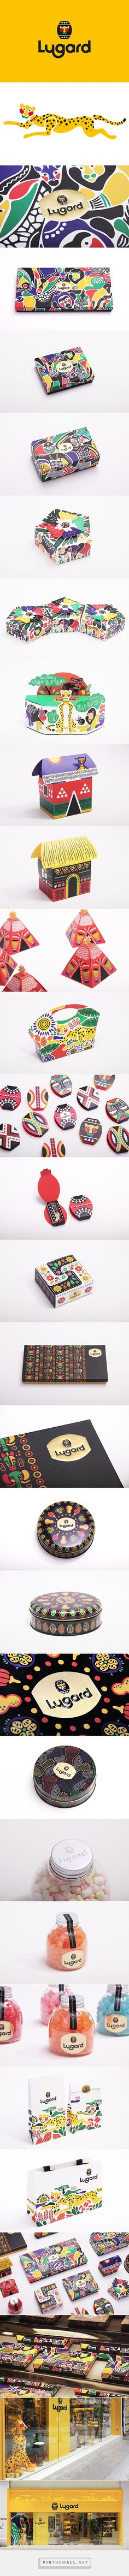 Lugard Brand Identity & Packaging Design on Behance